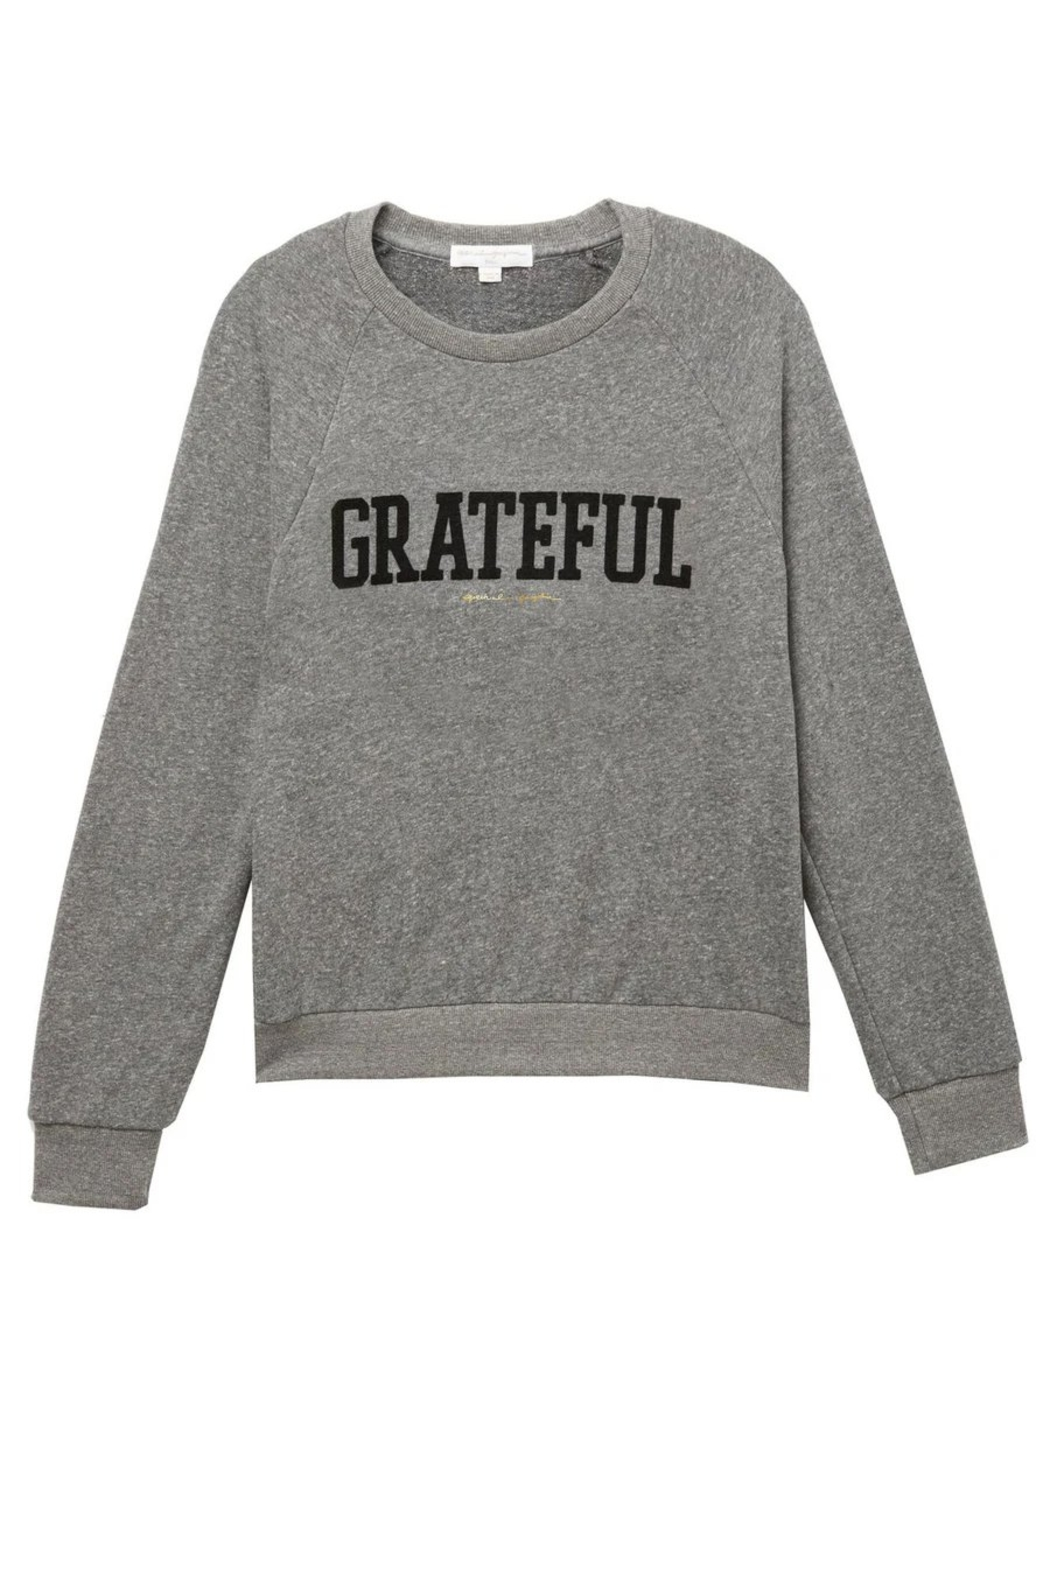 Spiritual Gangster  Grateful Old School Sweatshirt - Front Full Image